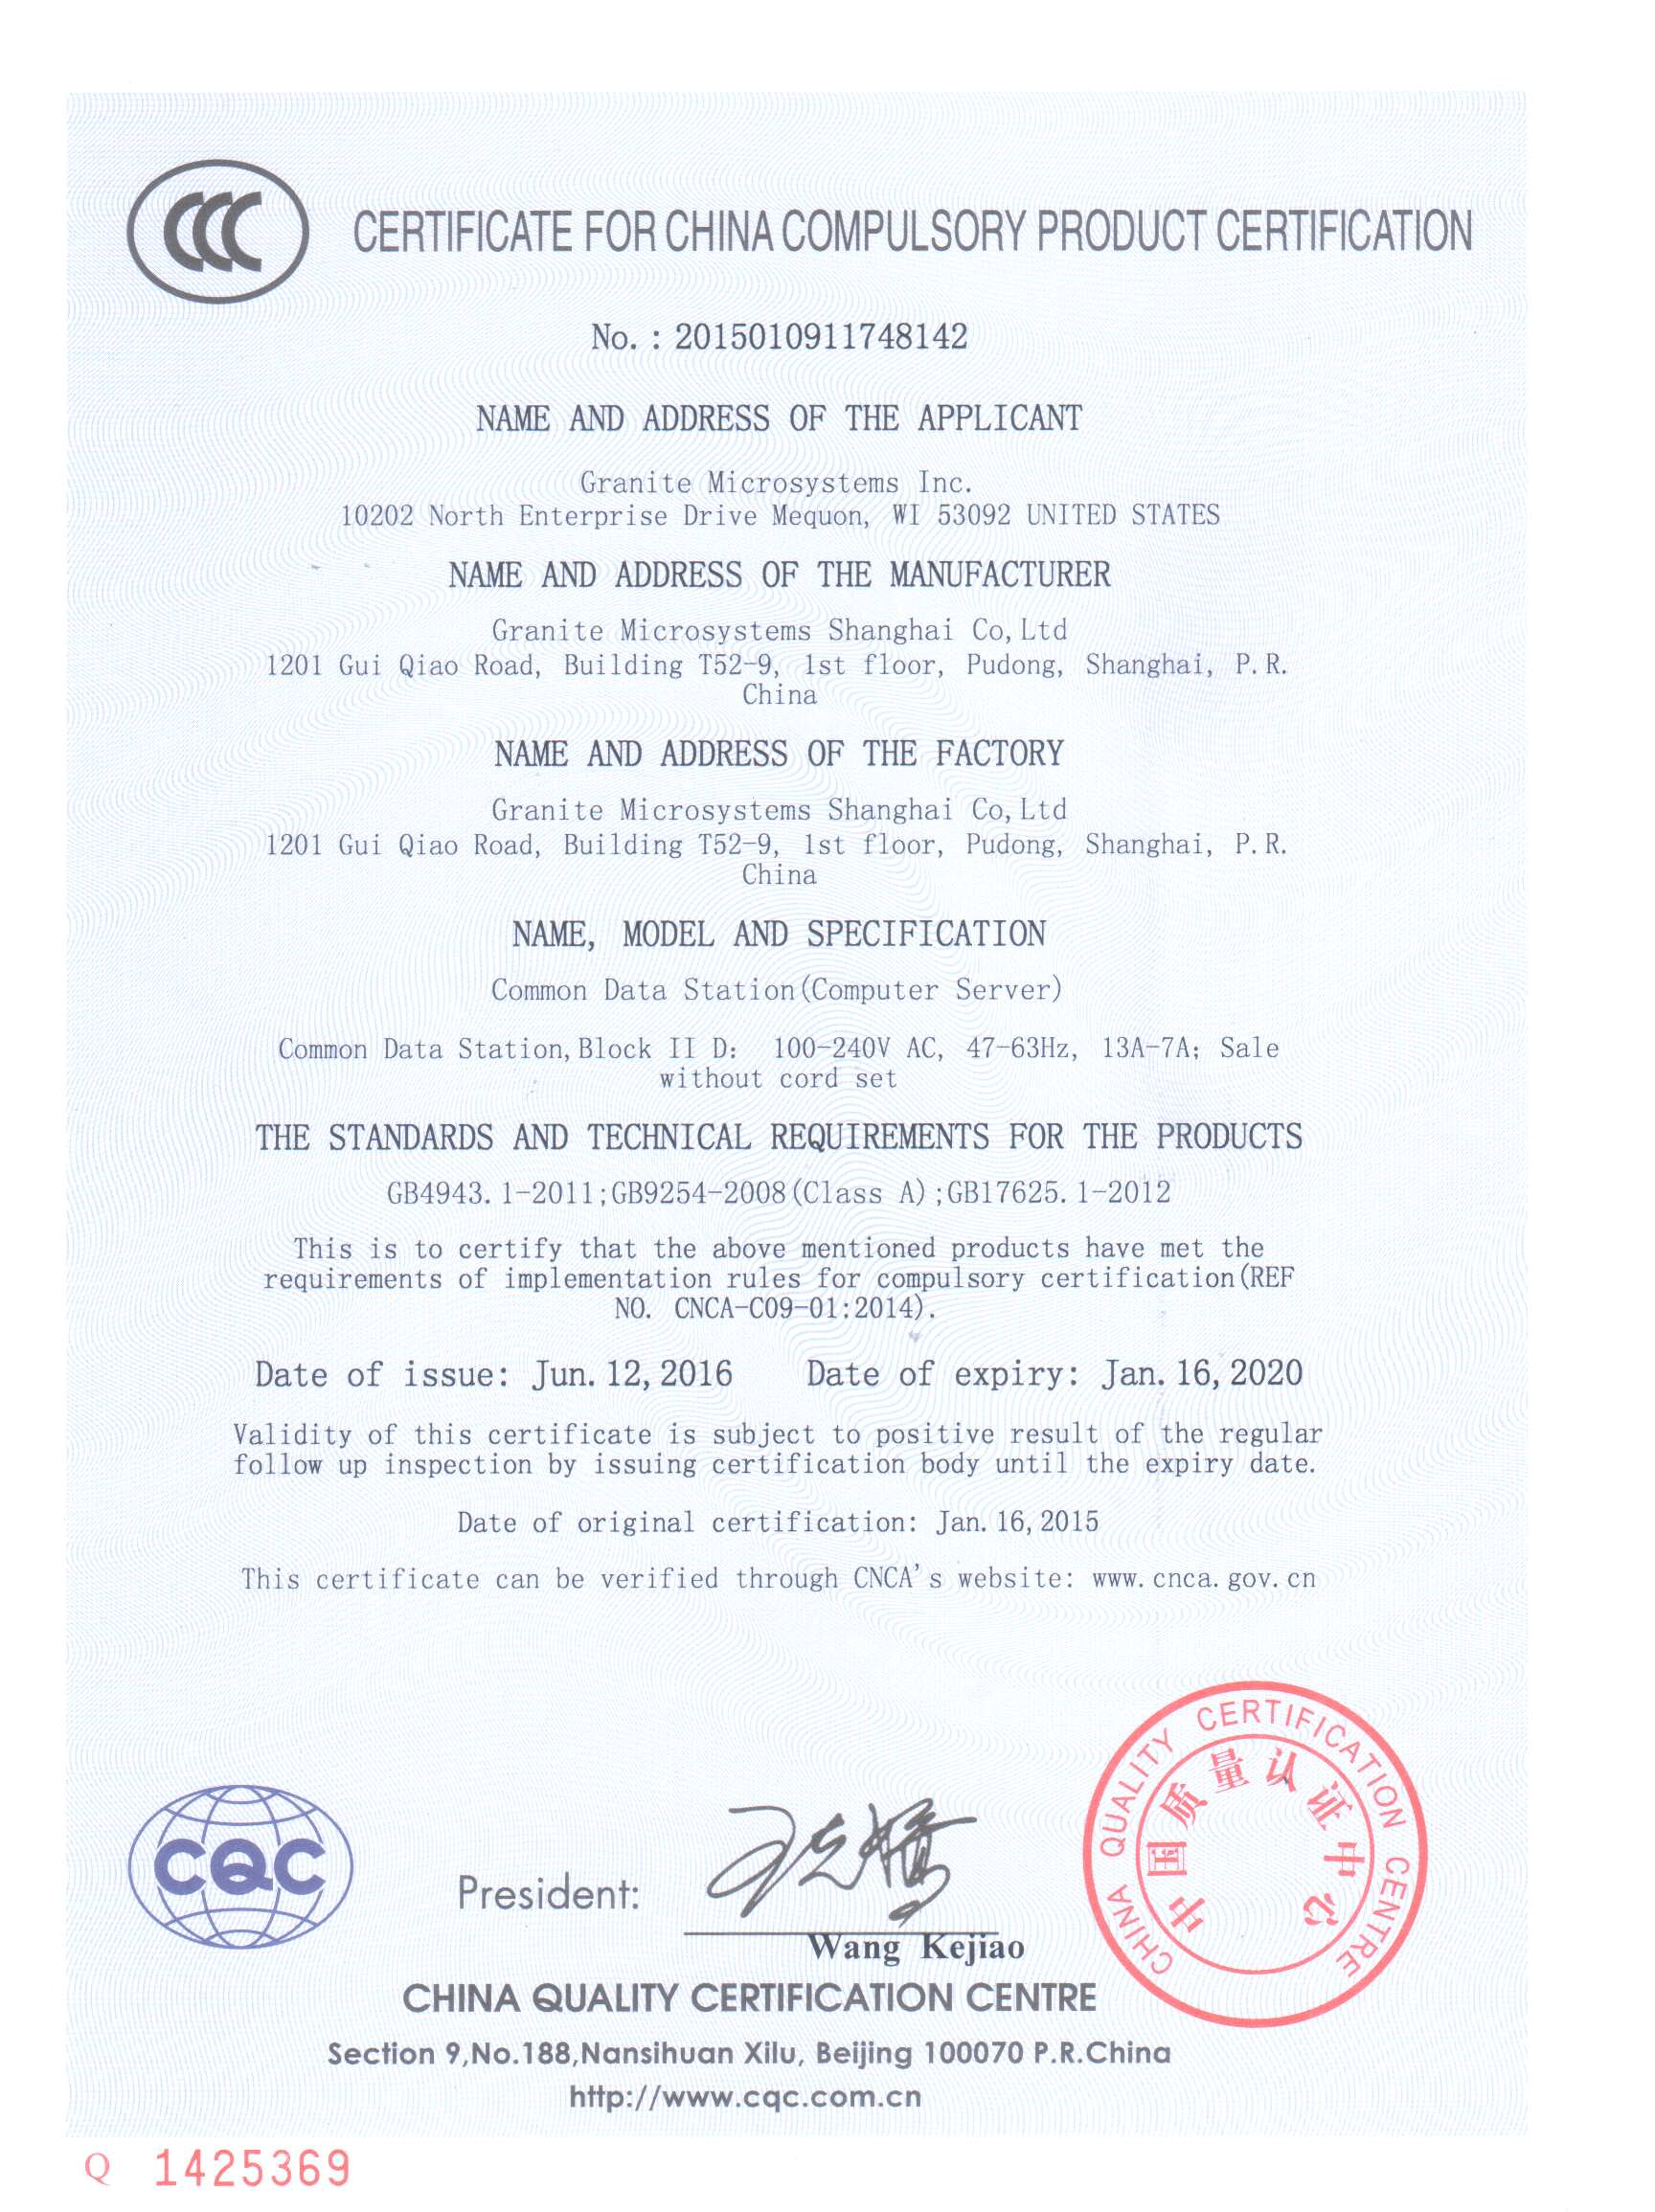 Gmi solutions sell your products in china with ccc certification view a sample certificate 1betcityfo Gallery